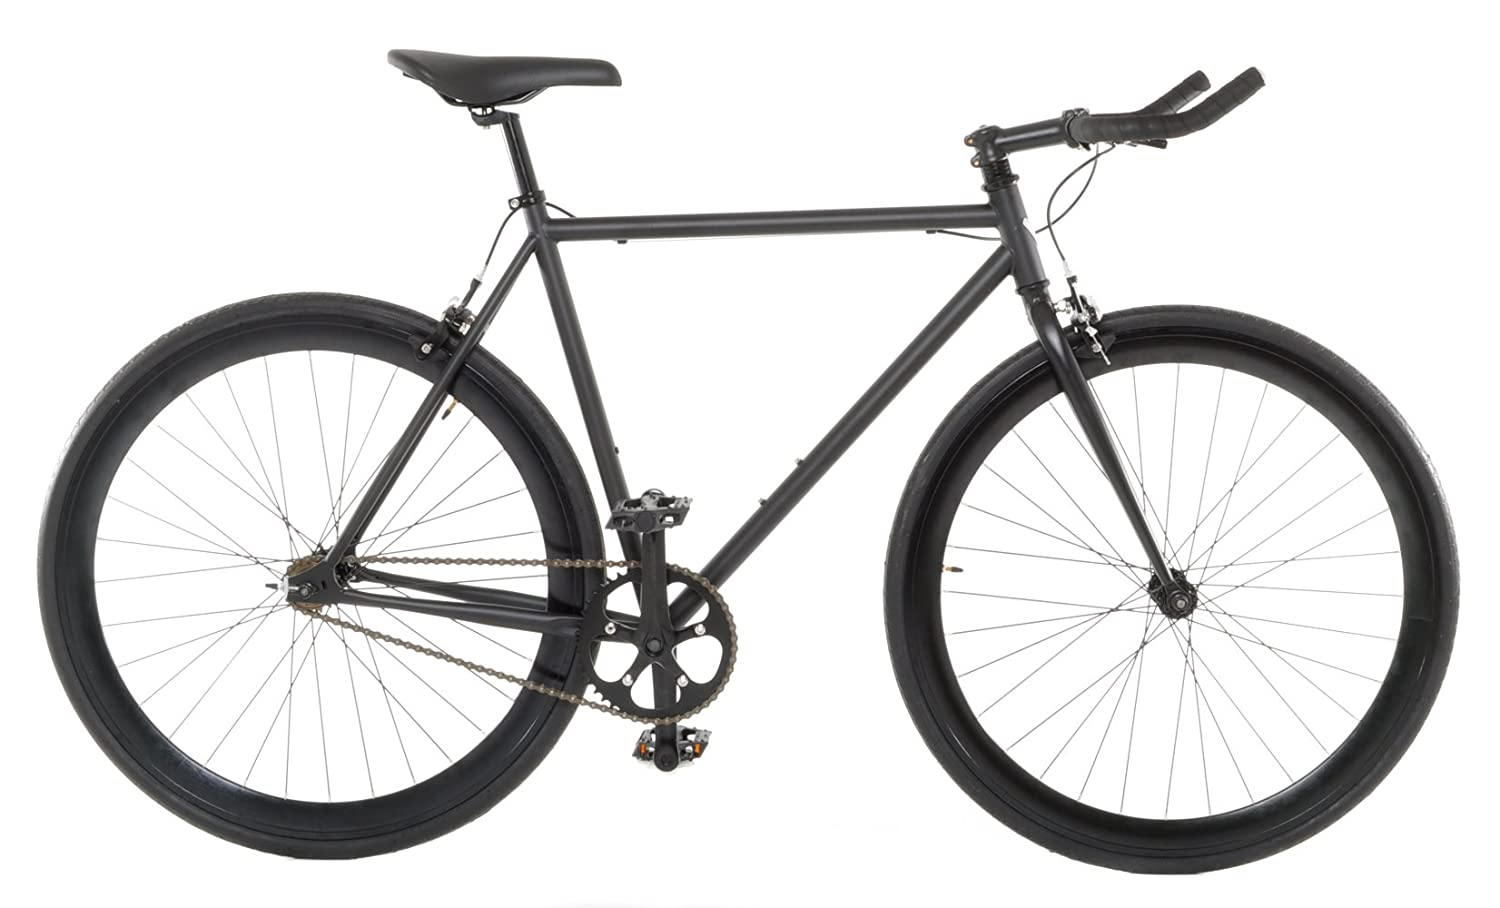 Top 5 Best Single Speed Bikes For Sale Online